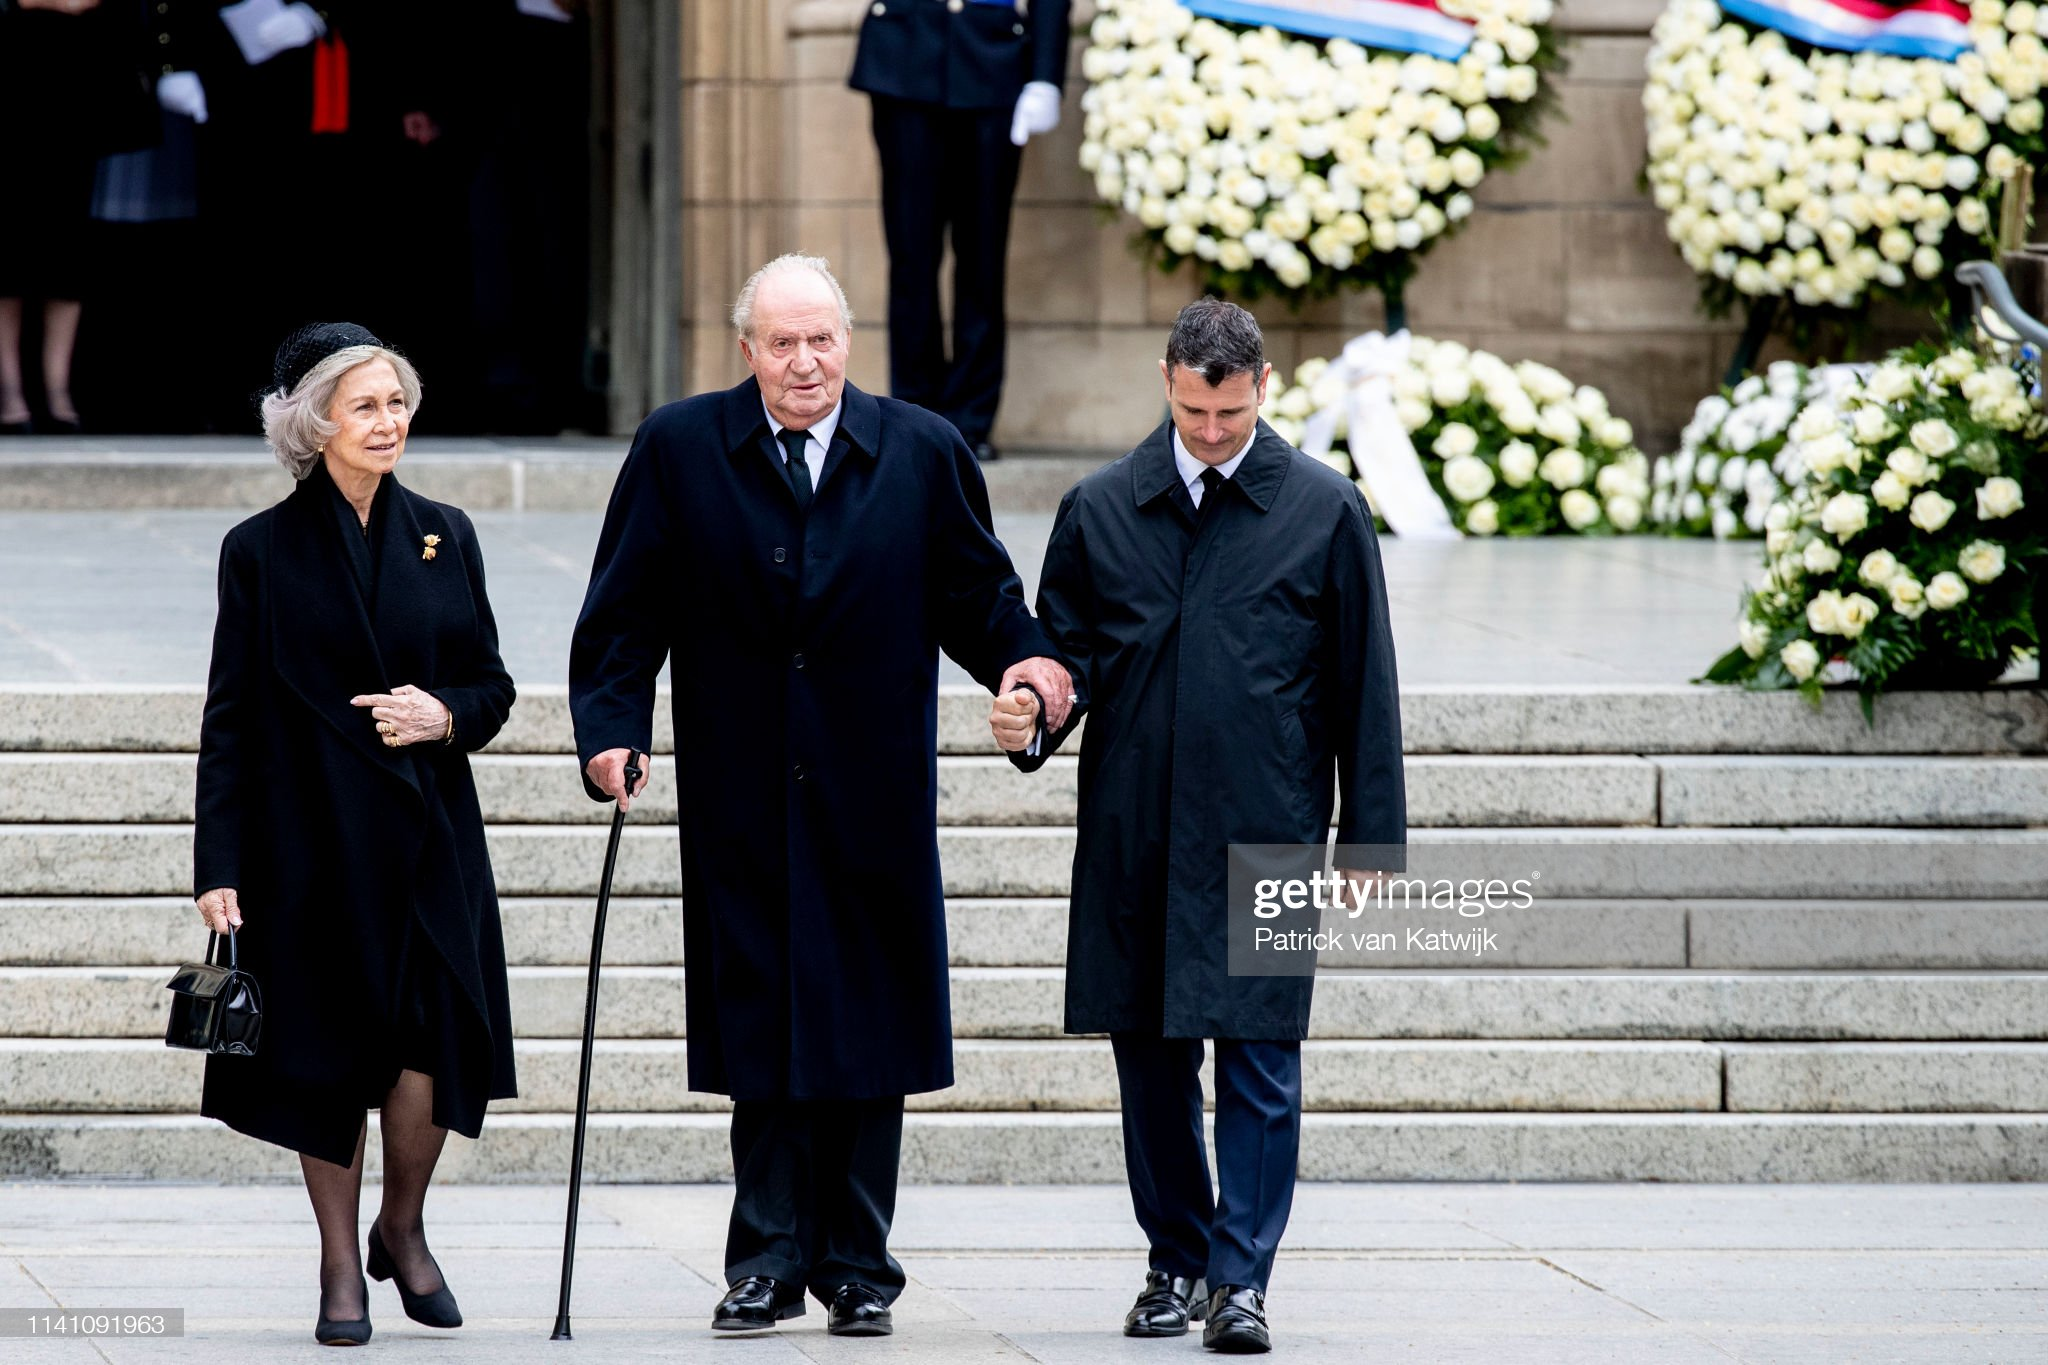 https://media.gettyimages.com/photos/king-juan-carlos-of-spain-and-queen-sofia-of-spain-attend-the-funeral-picture-id1141091963?s=2048x2048